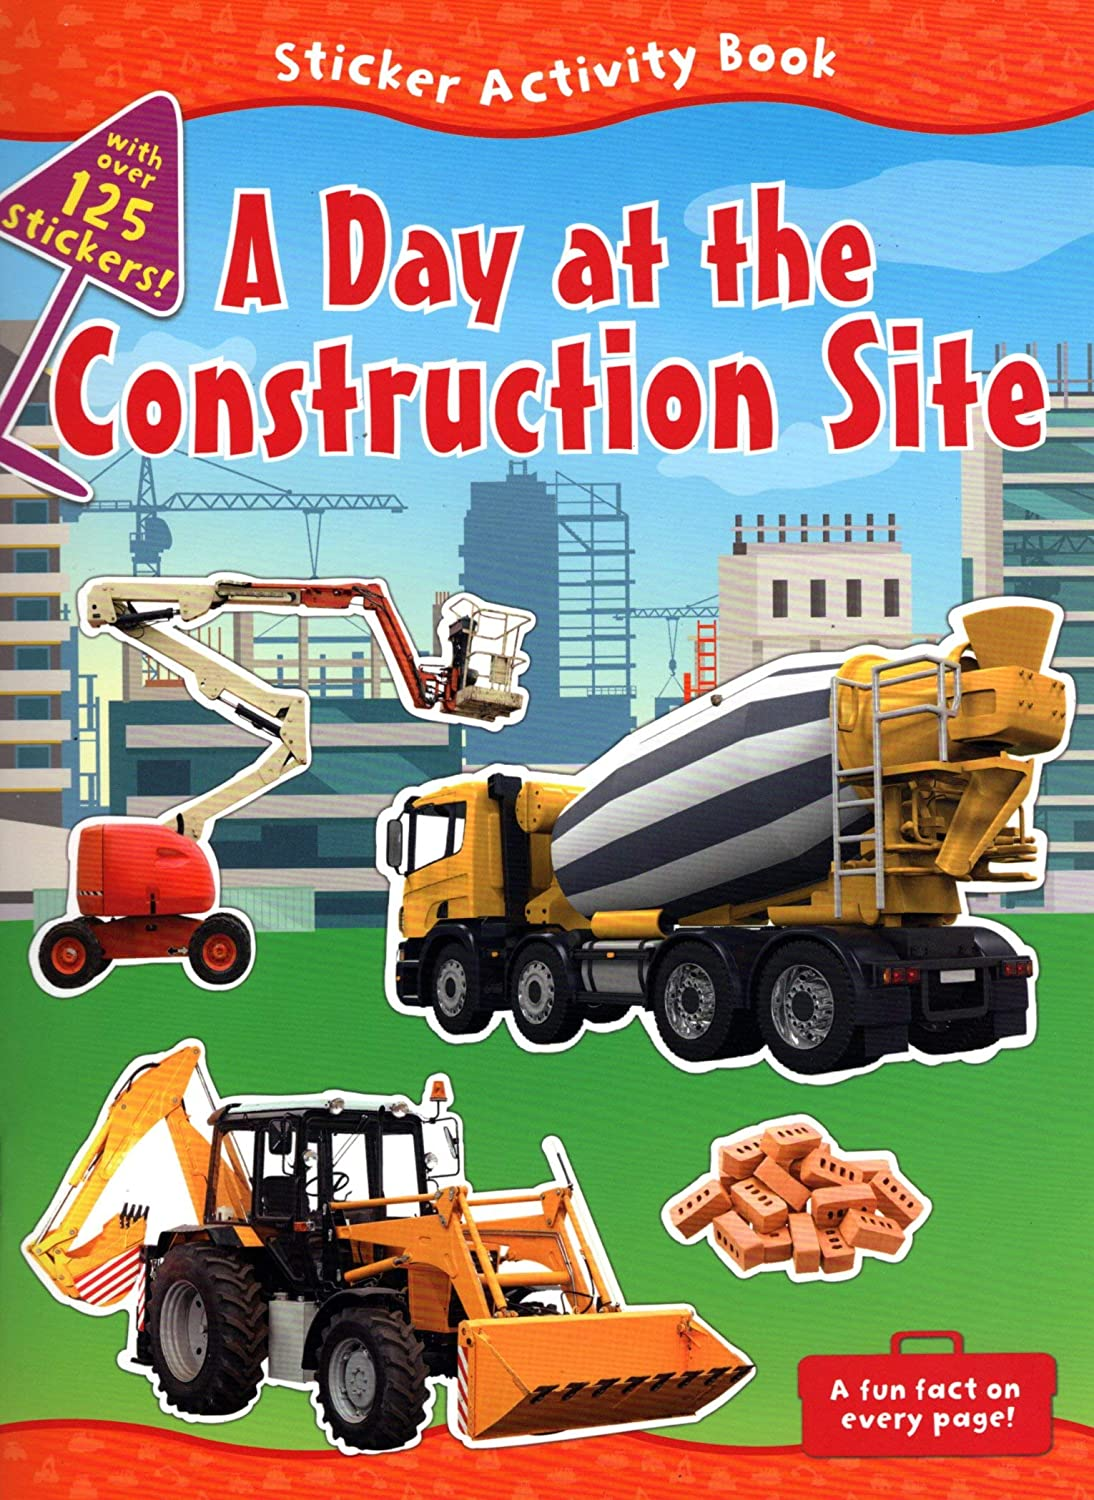 Sticker Activity Book - A Day at The Construction Site - with Over 125 Stickers